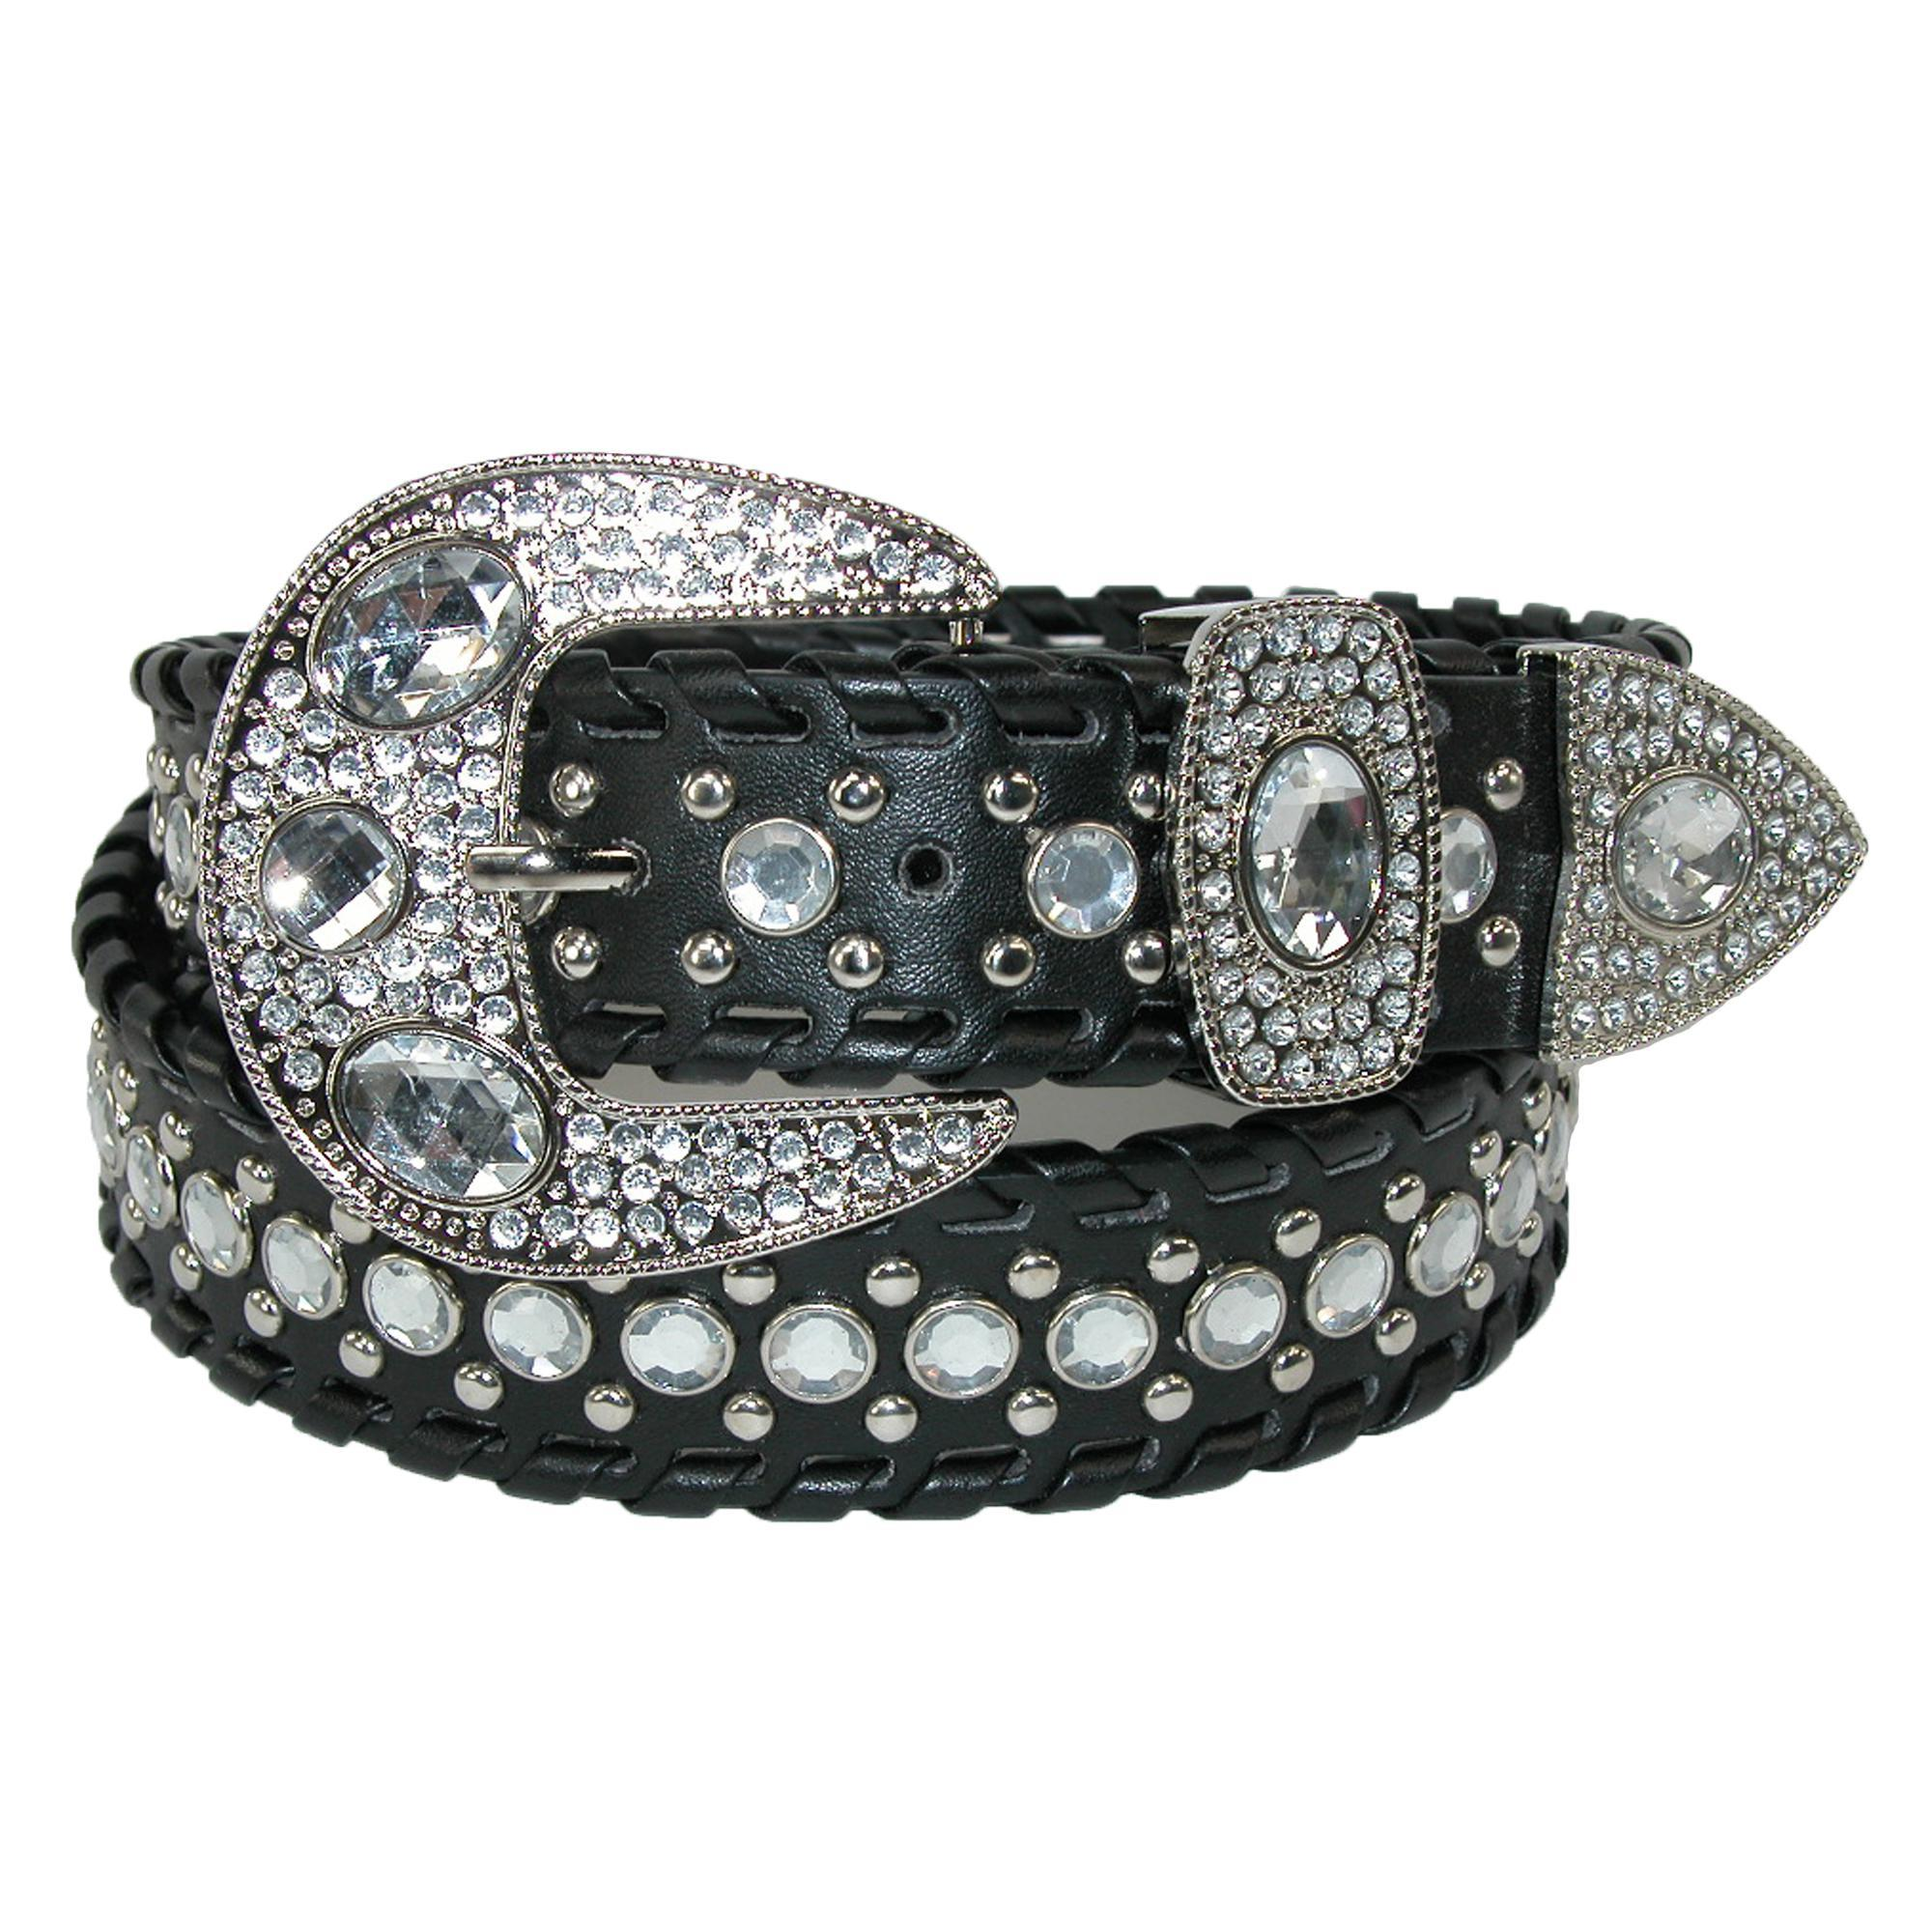 Ctm Womens Western Belt With Rhinestones And Studs